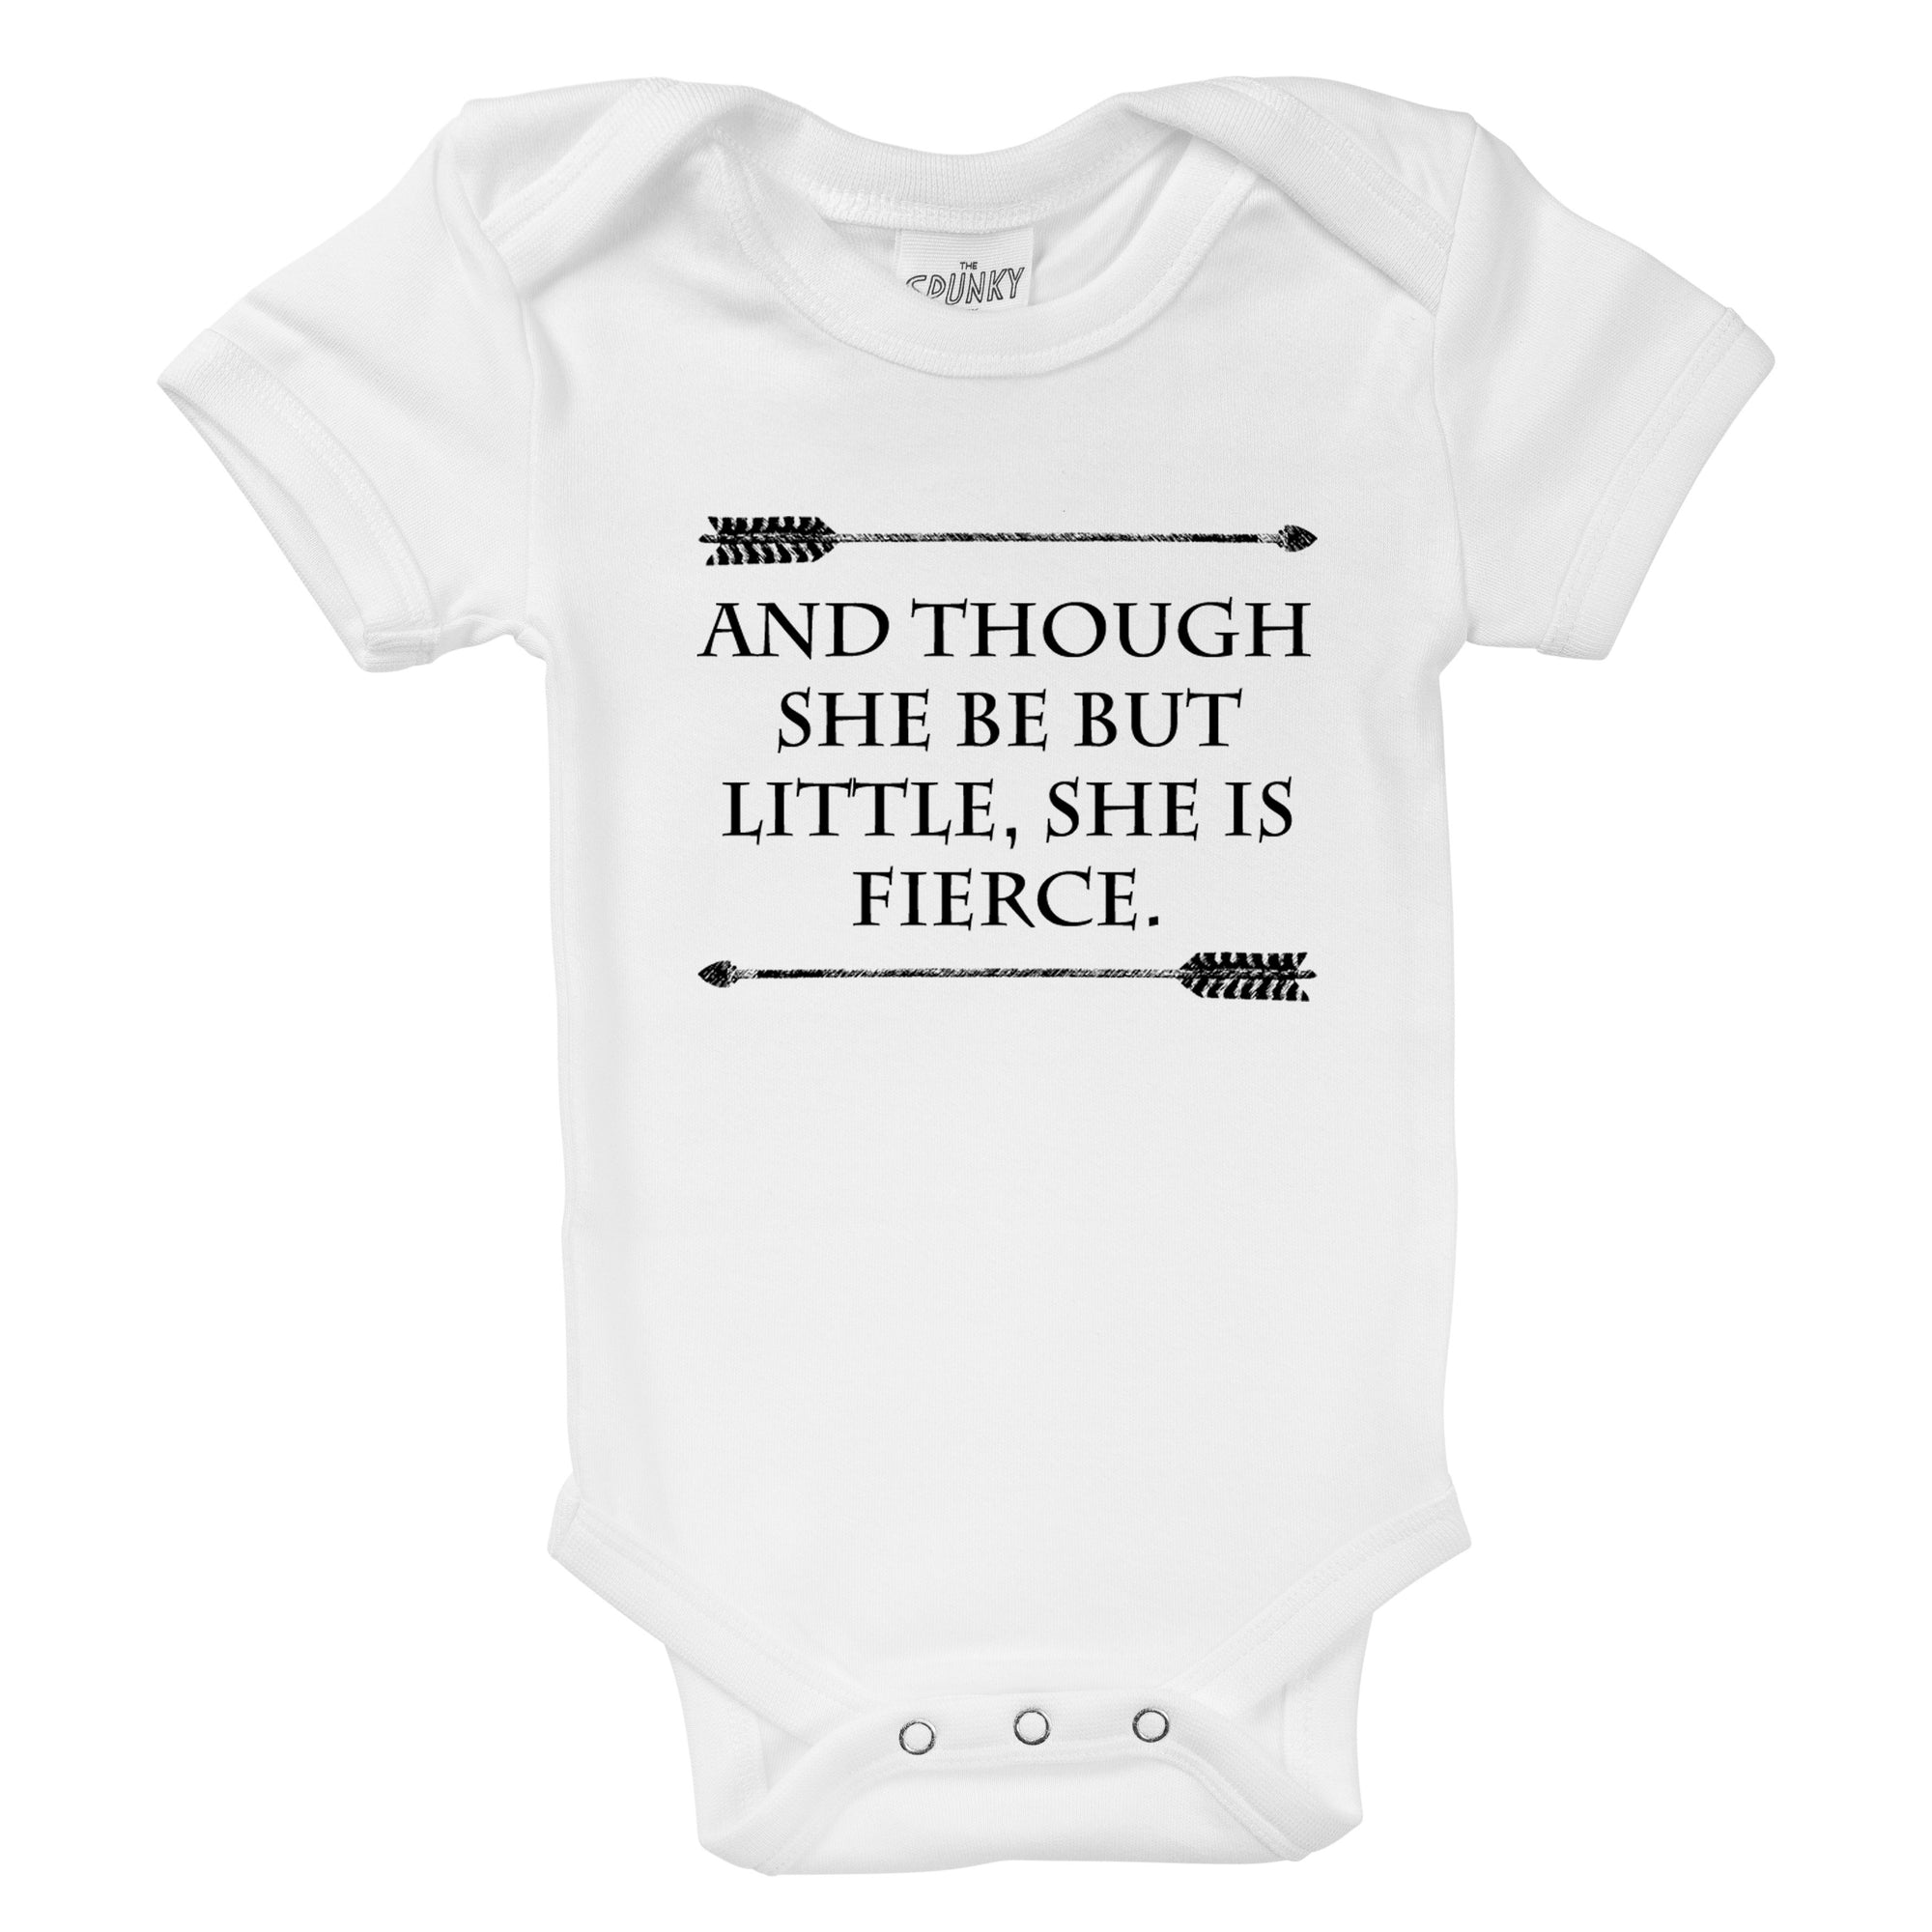 Baby Onesie\u00a9 And Though She Be But Little She Be Fierce Shakespeare Adorable Fashion New Girl Baby Shower Gift Nursery Clothing Gerber\u00a9